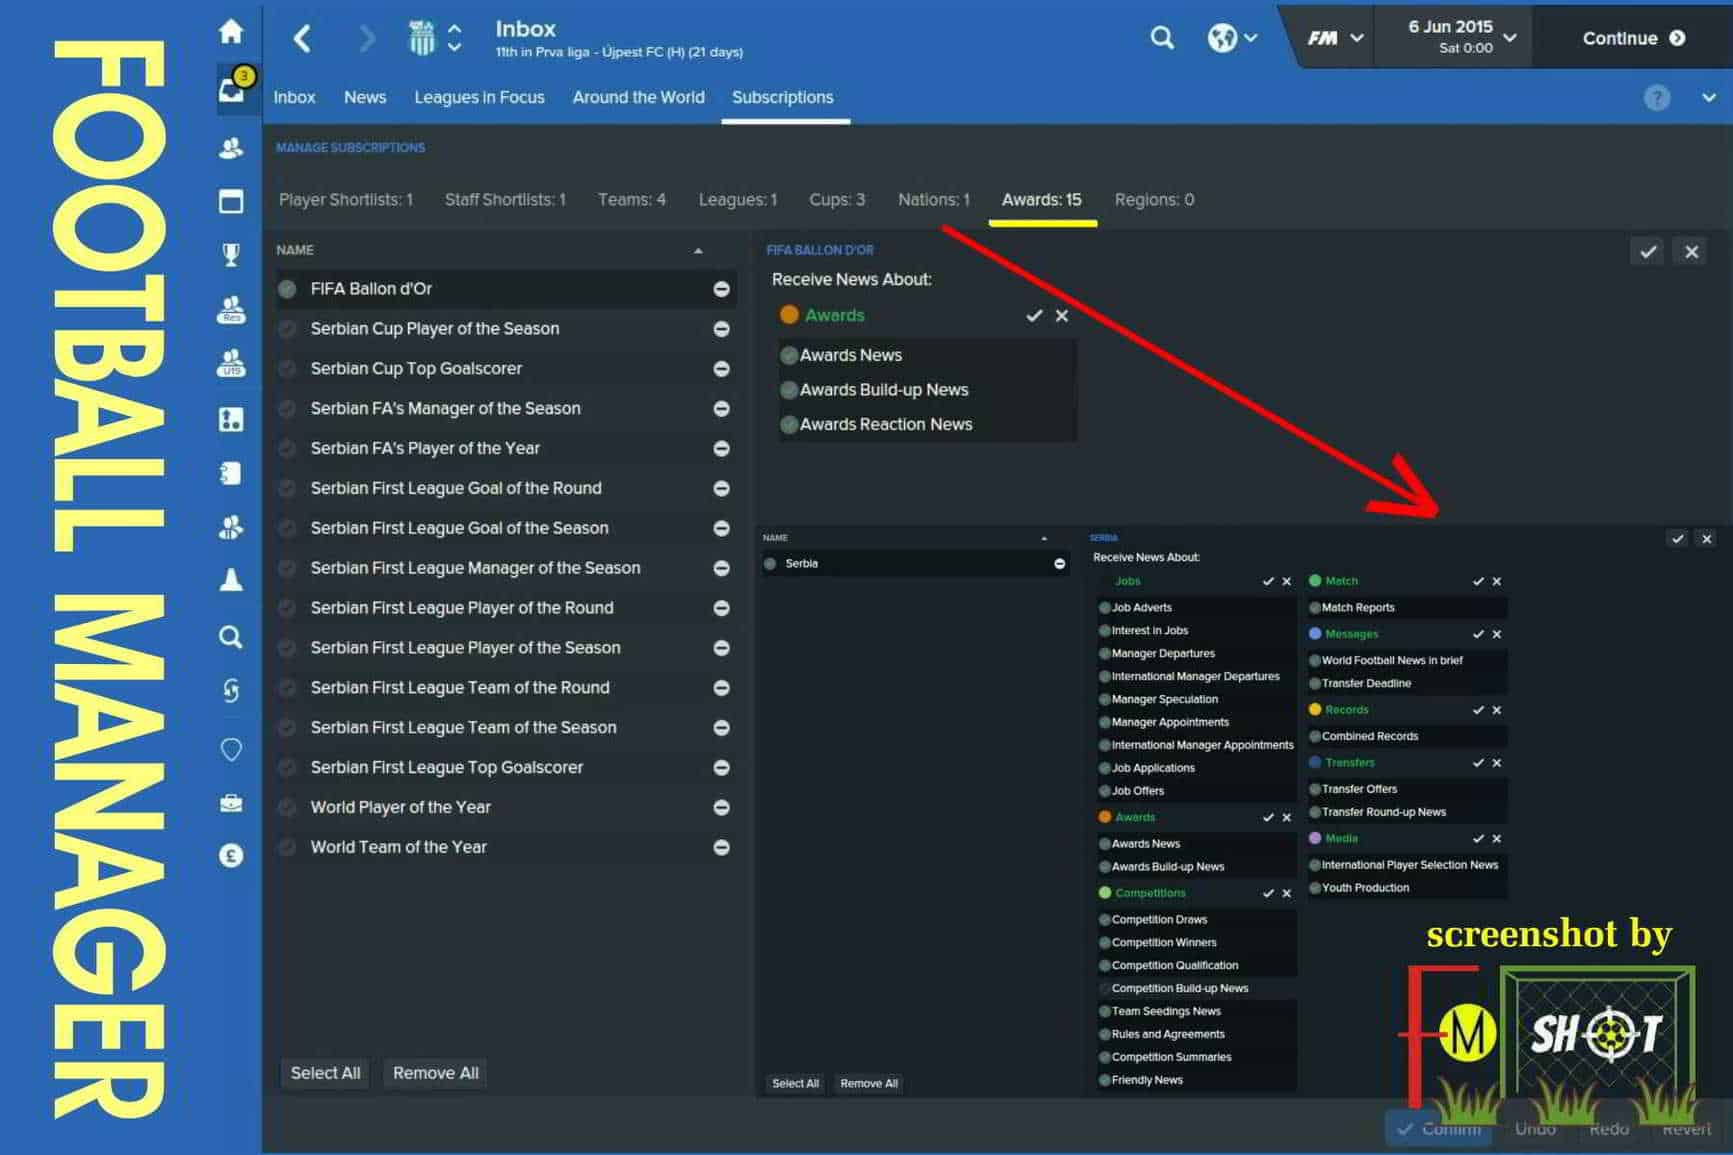 Subscriptions - Awards and Nations in FM 2016